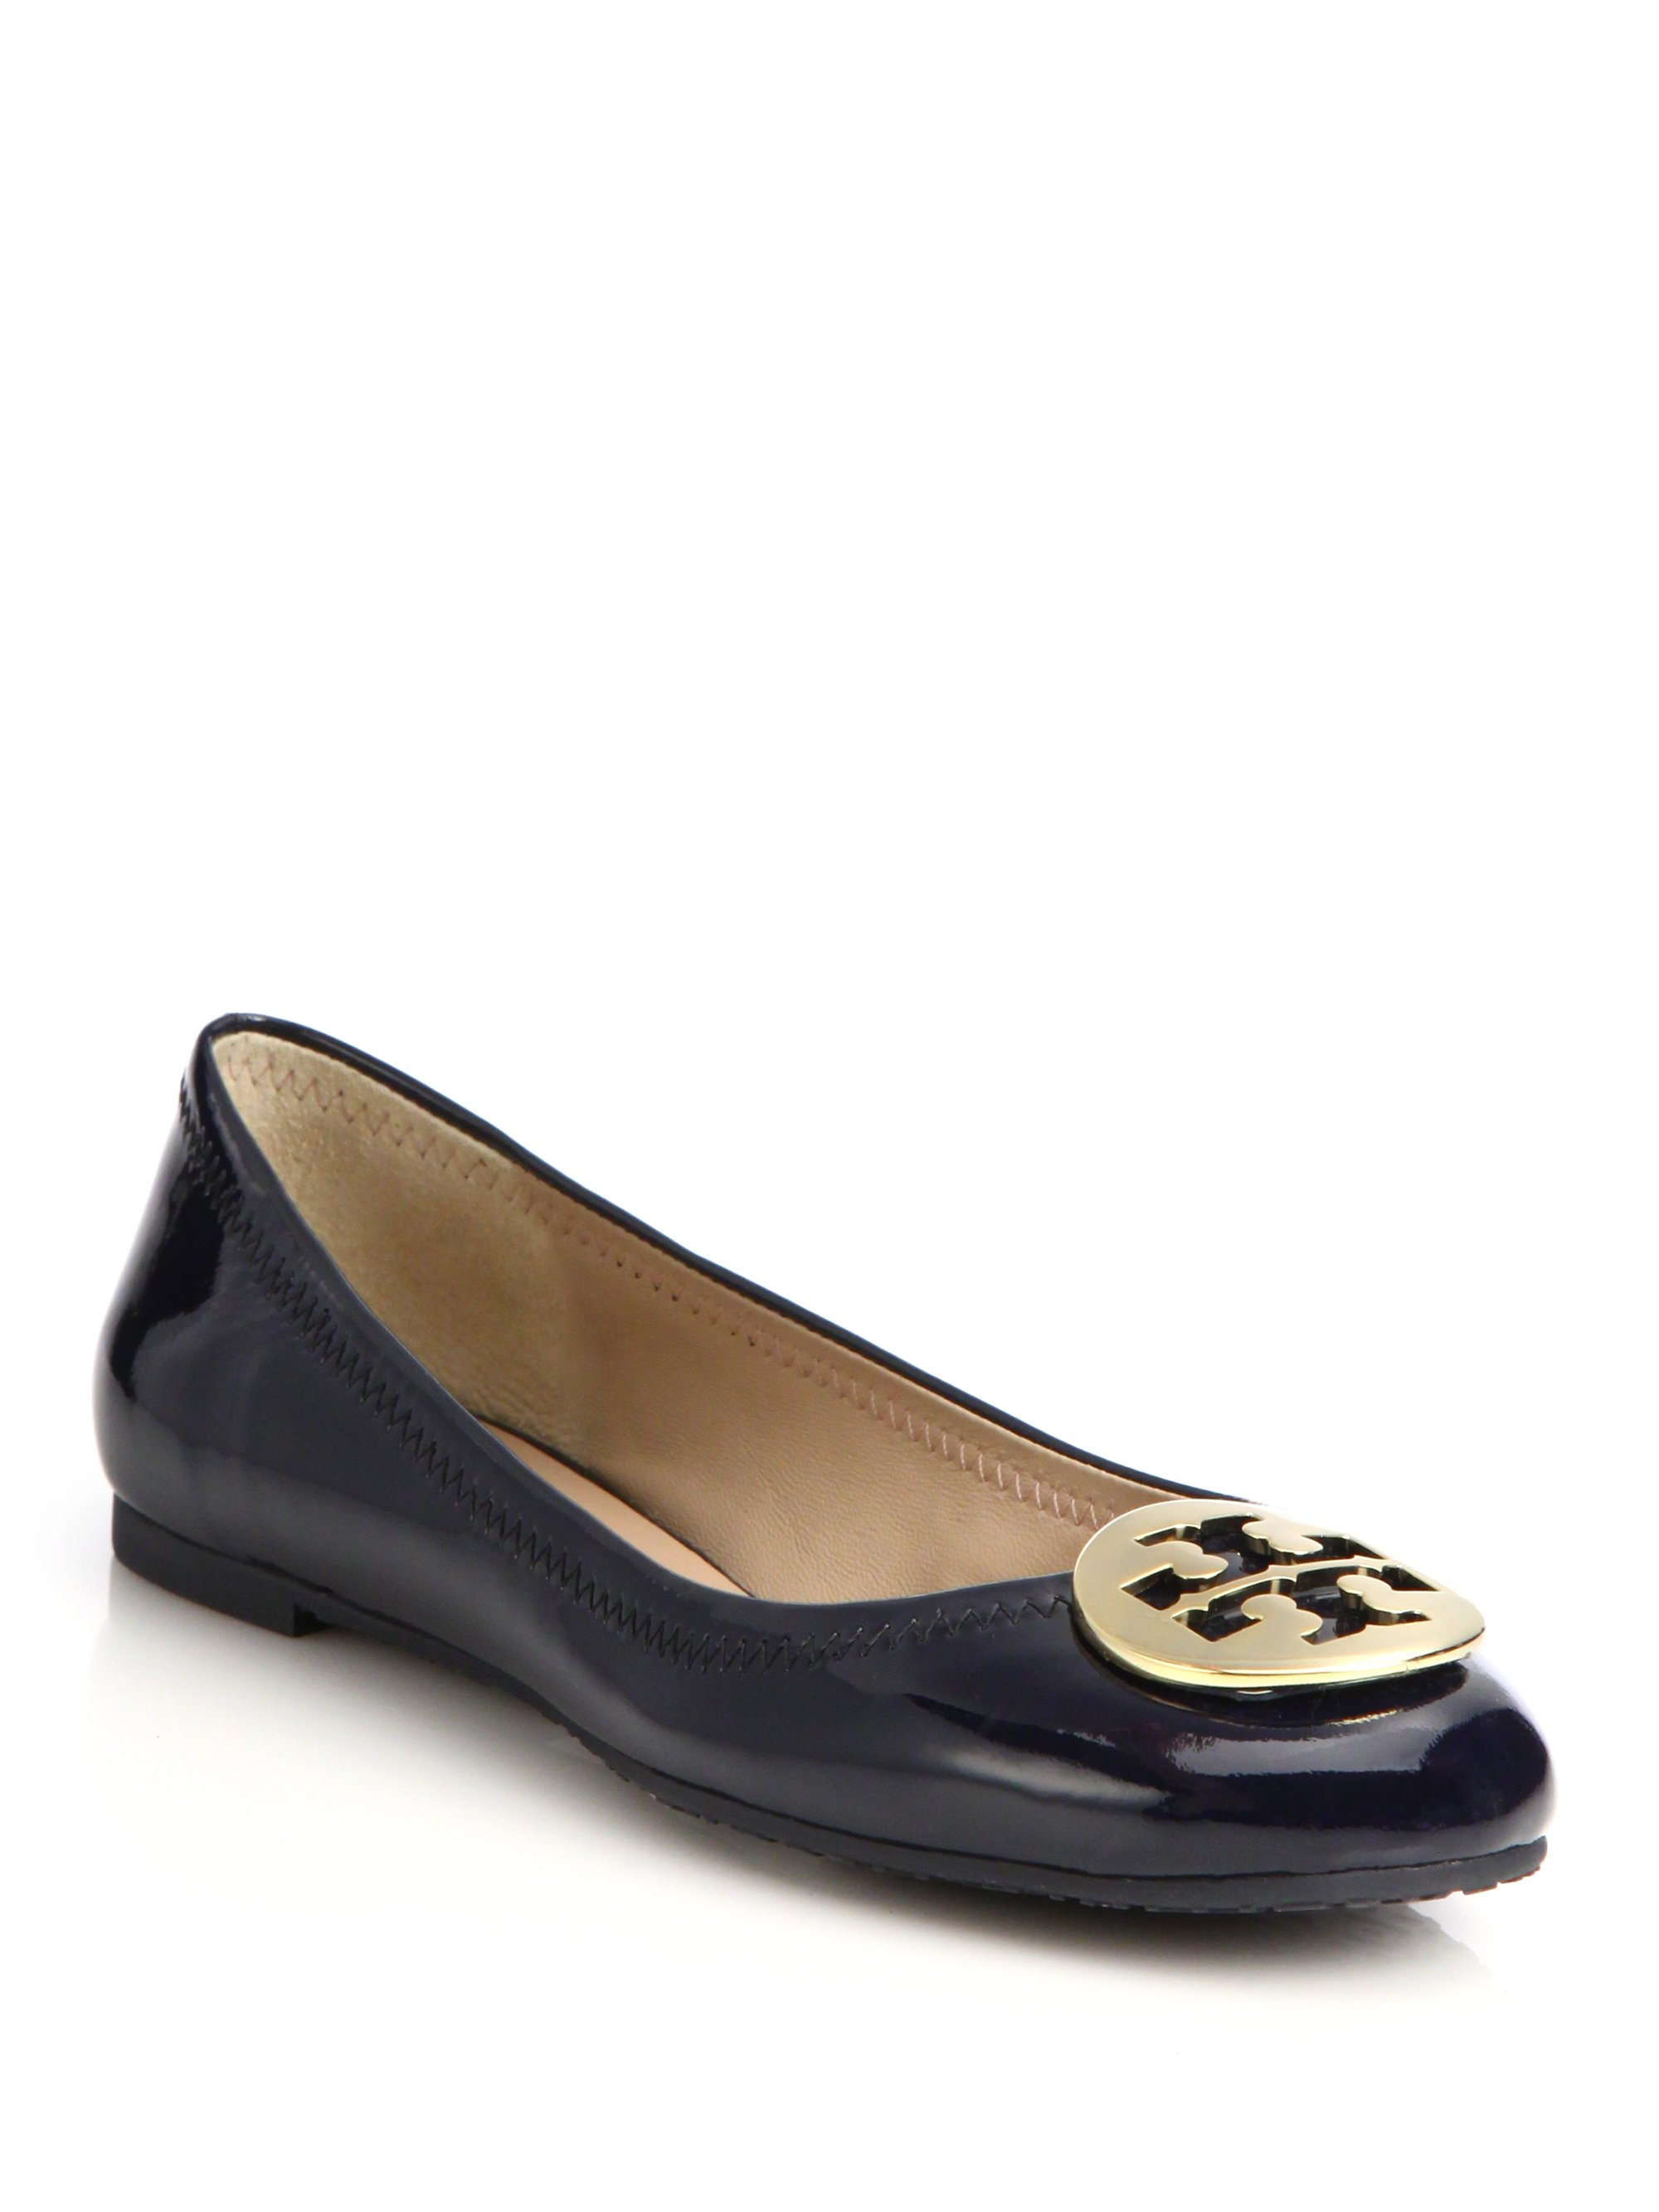 cbc3412aa29a7 Lyst - Tory Burch Reva Patent Leather Ballet Flats in Blue